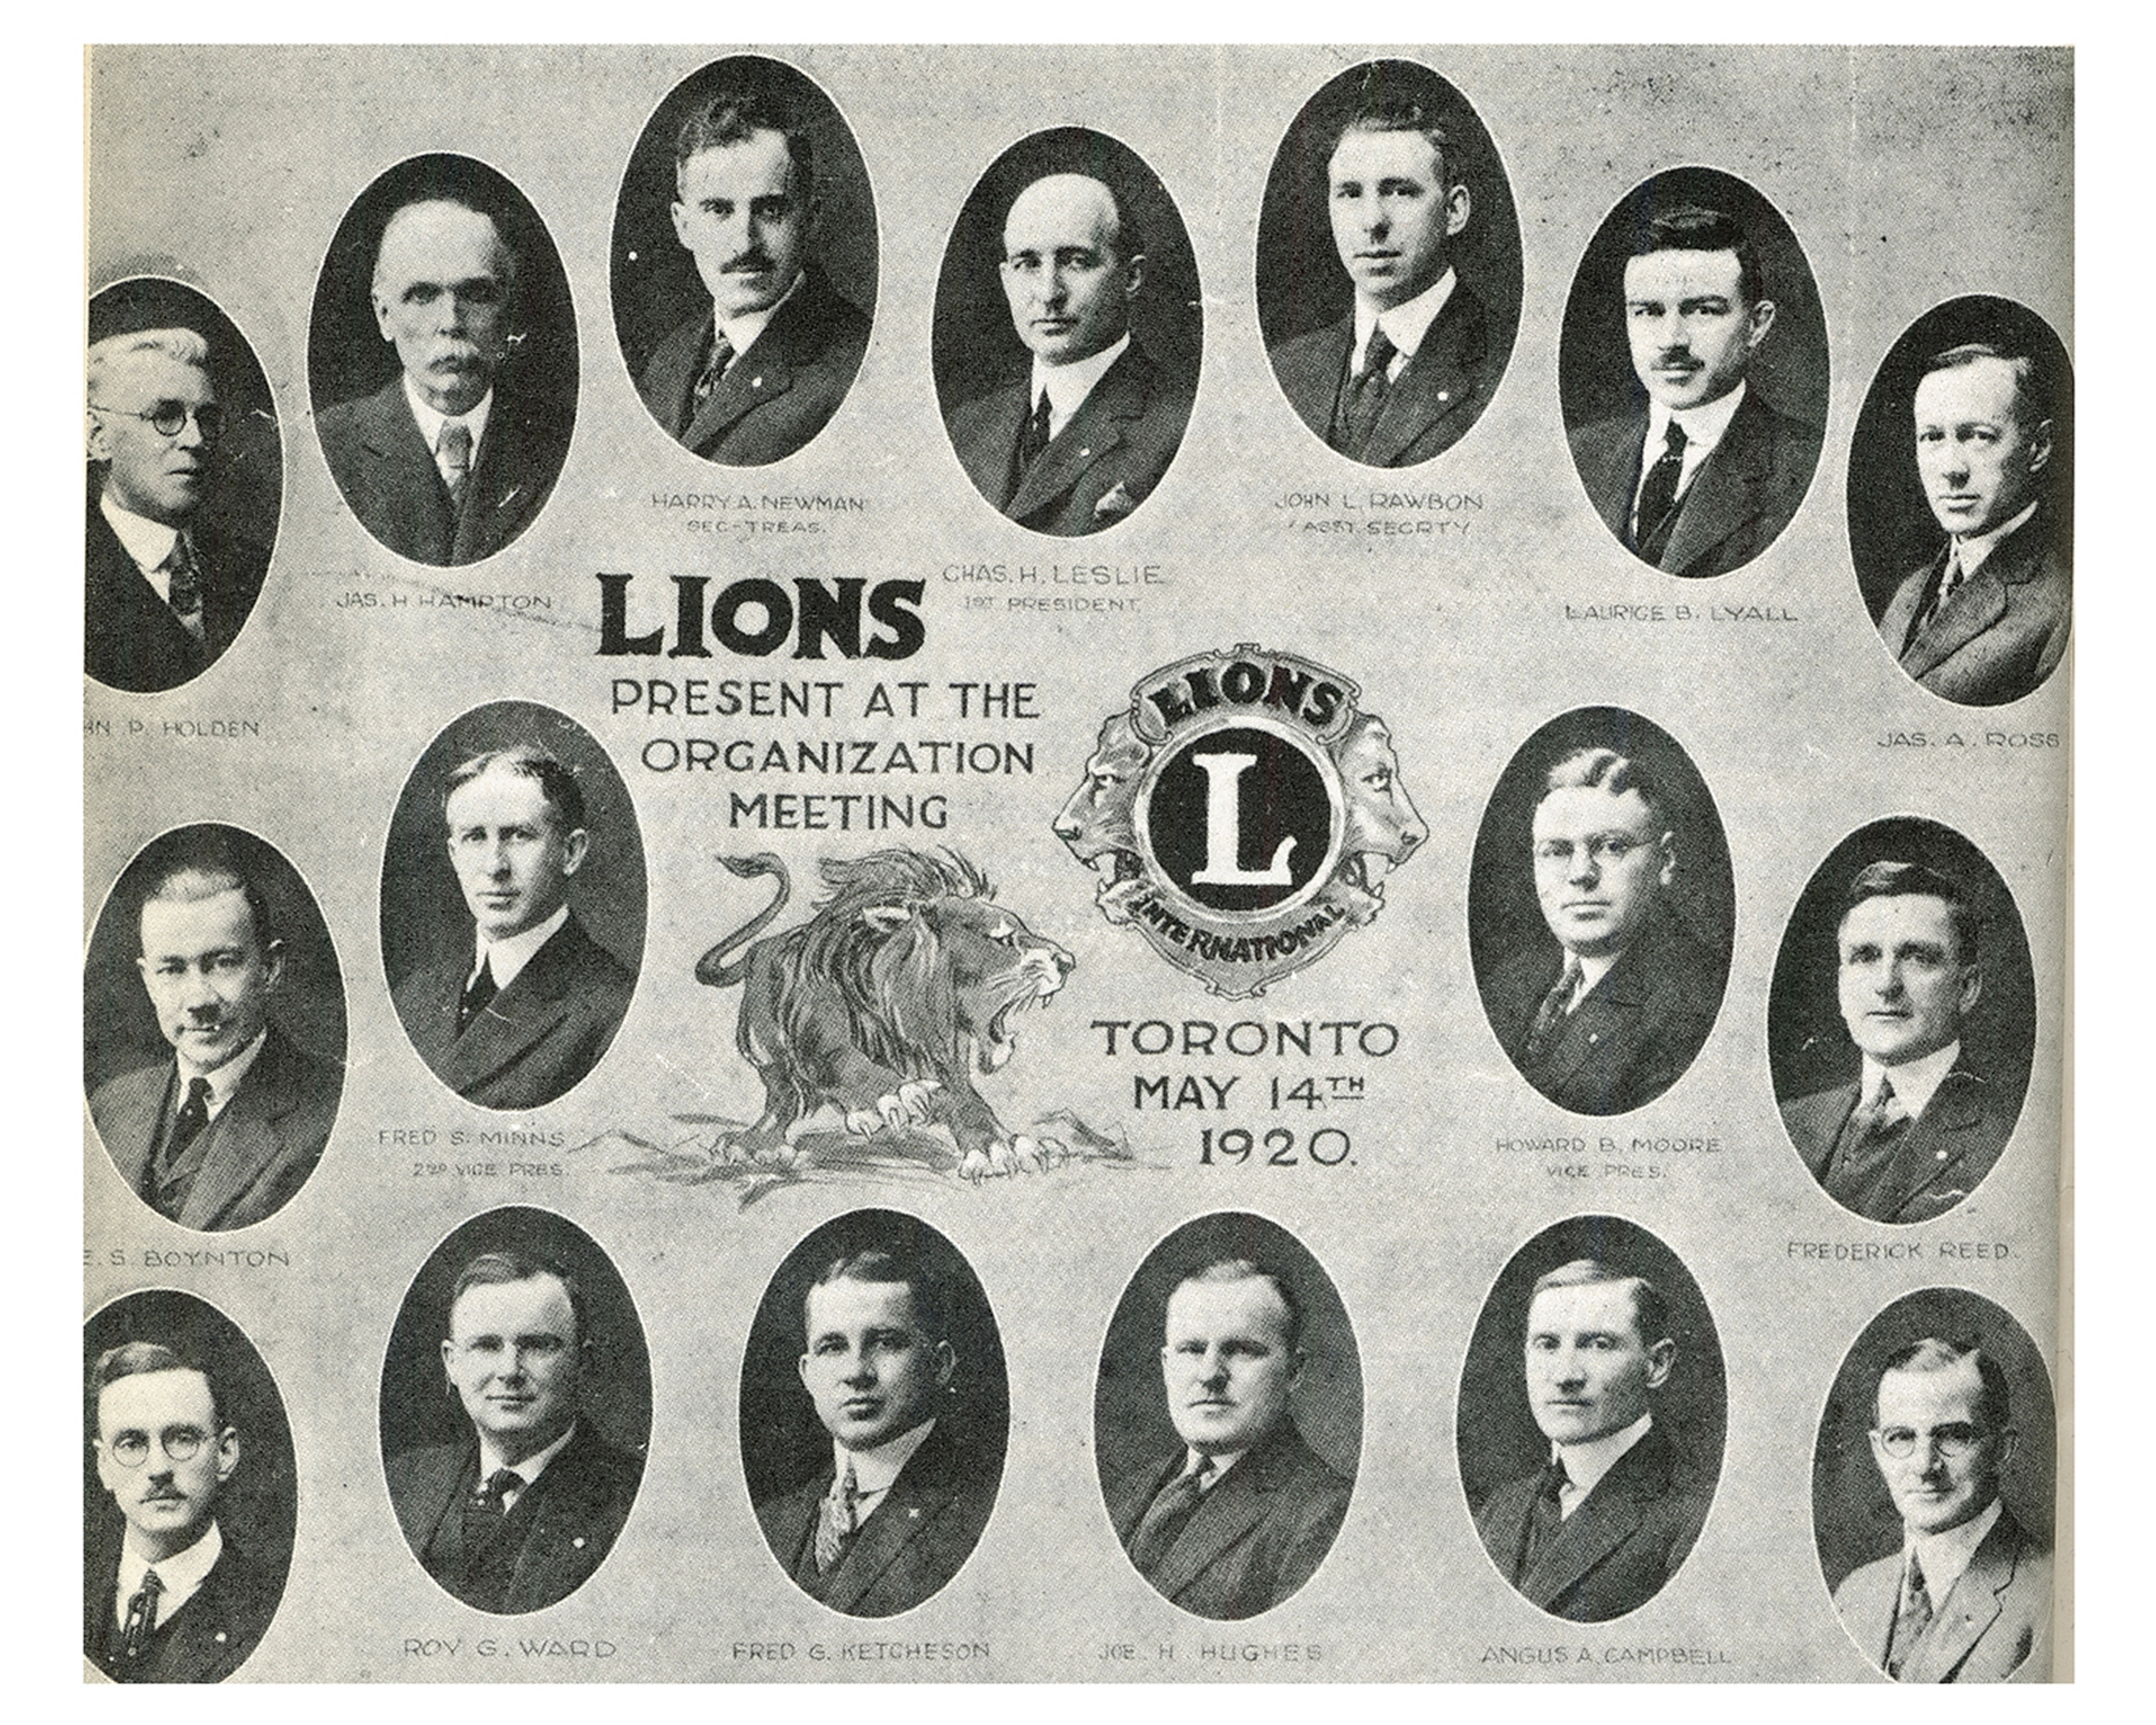 Toronto Central Lions organization meetng